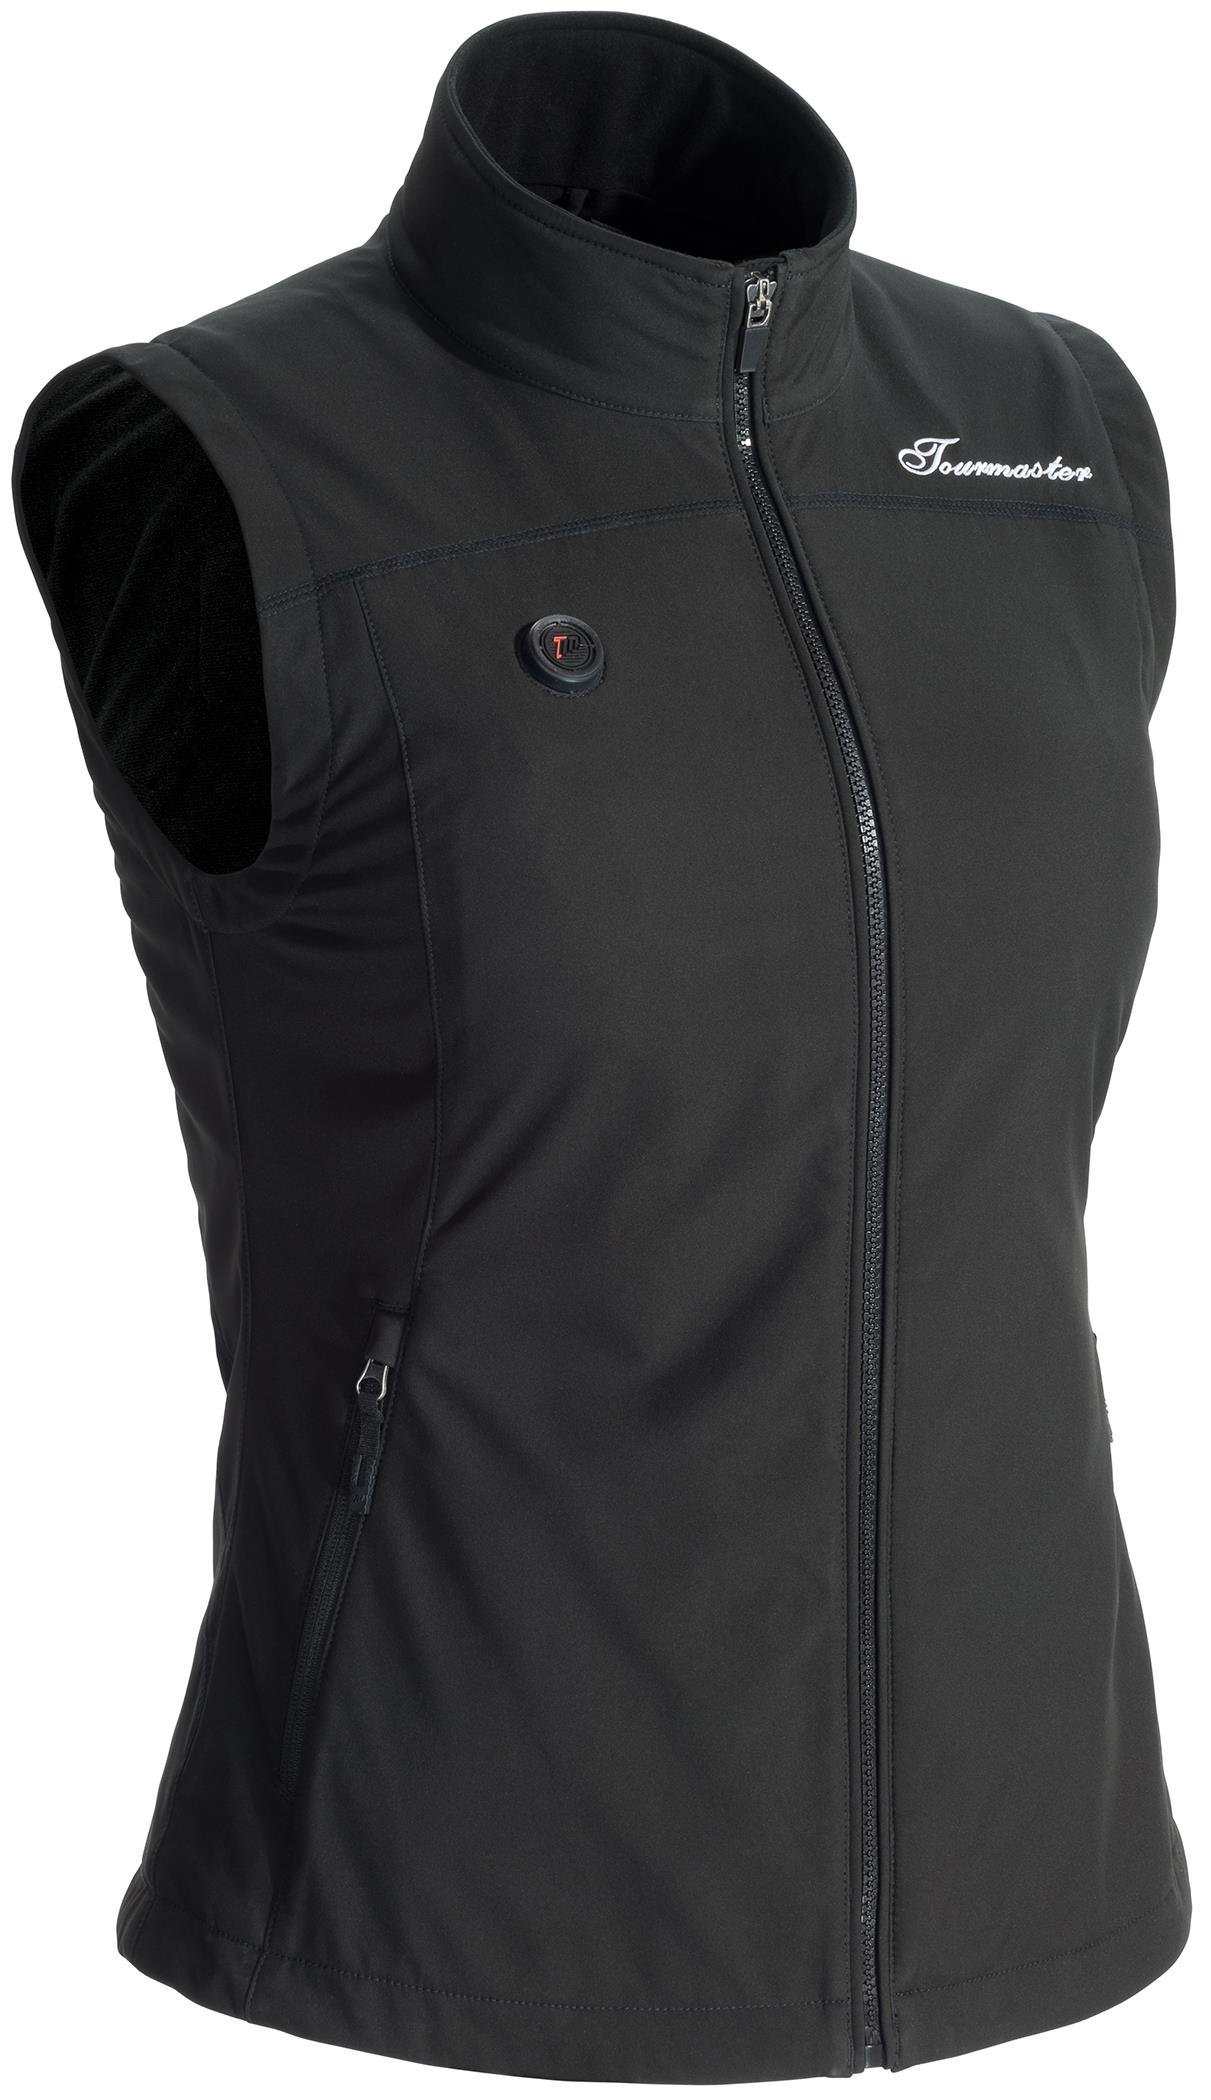 Tour Master Synergy 7.4V Women's Battery Heated Motorcycle Vest - Black, Small